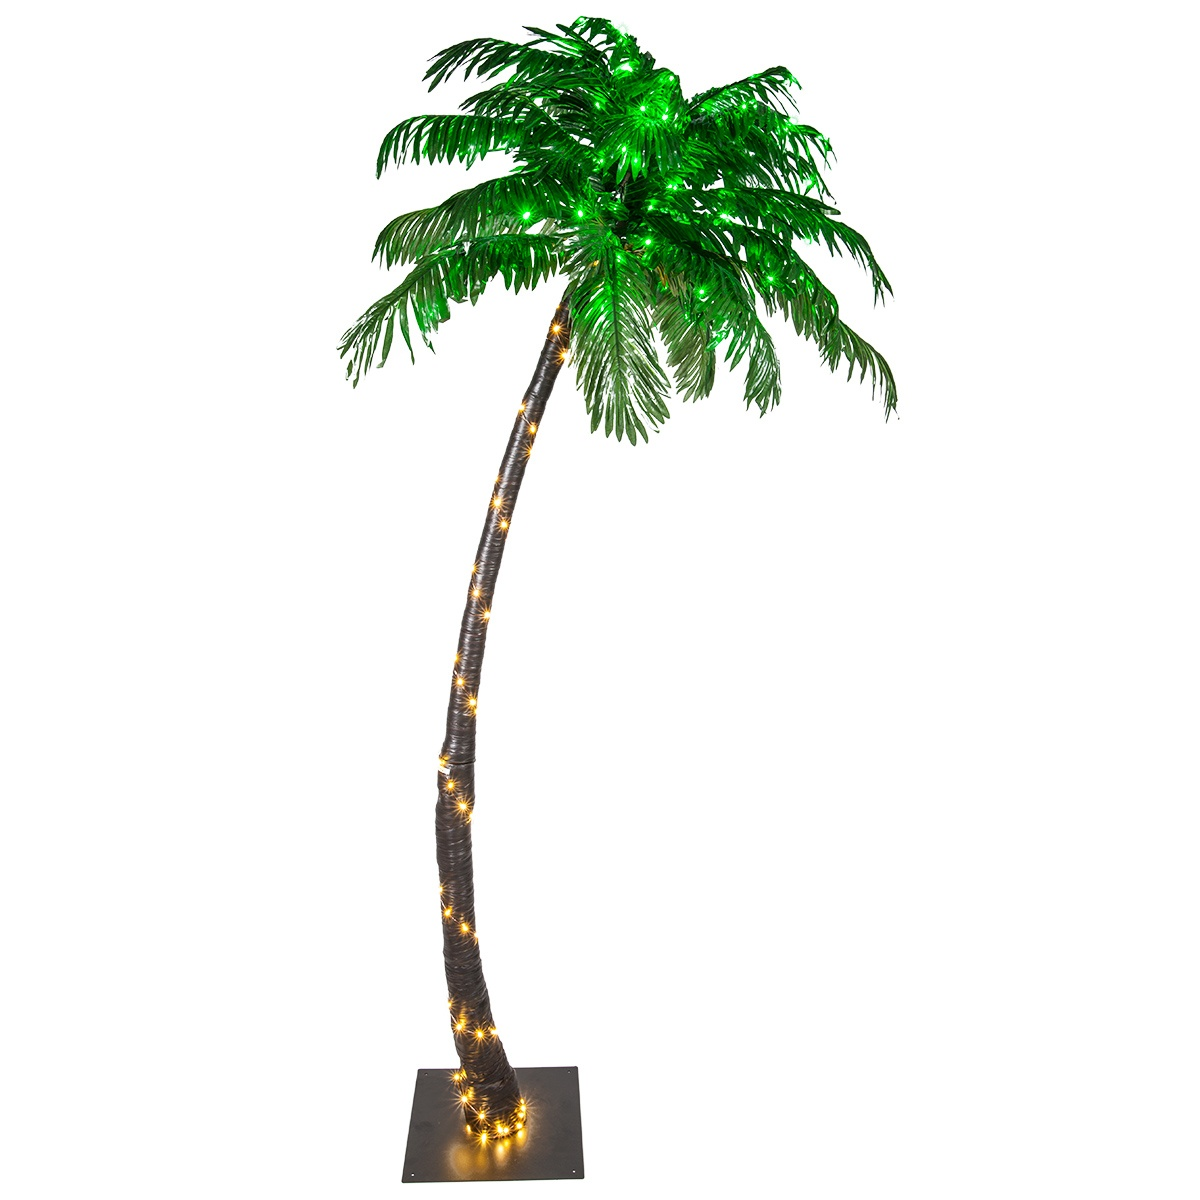 7' LED Curved Lighted Palm Tree